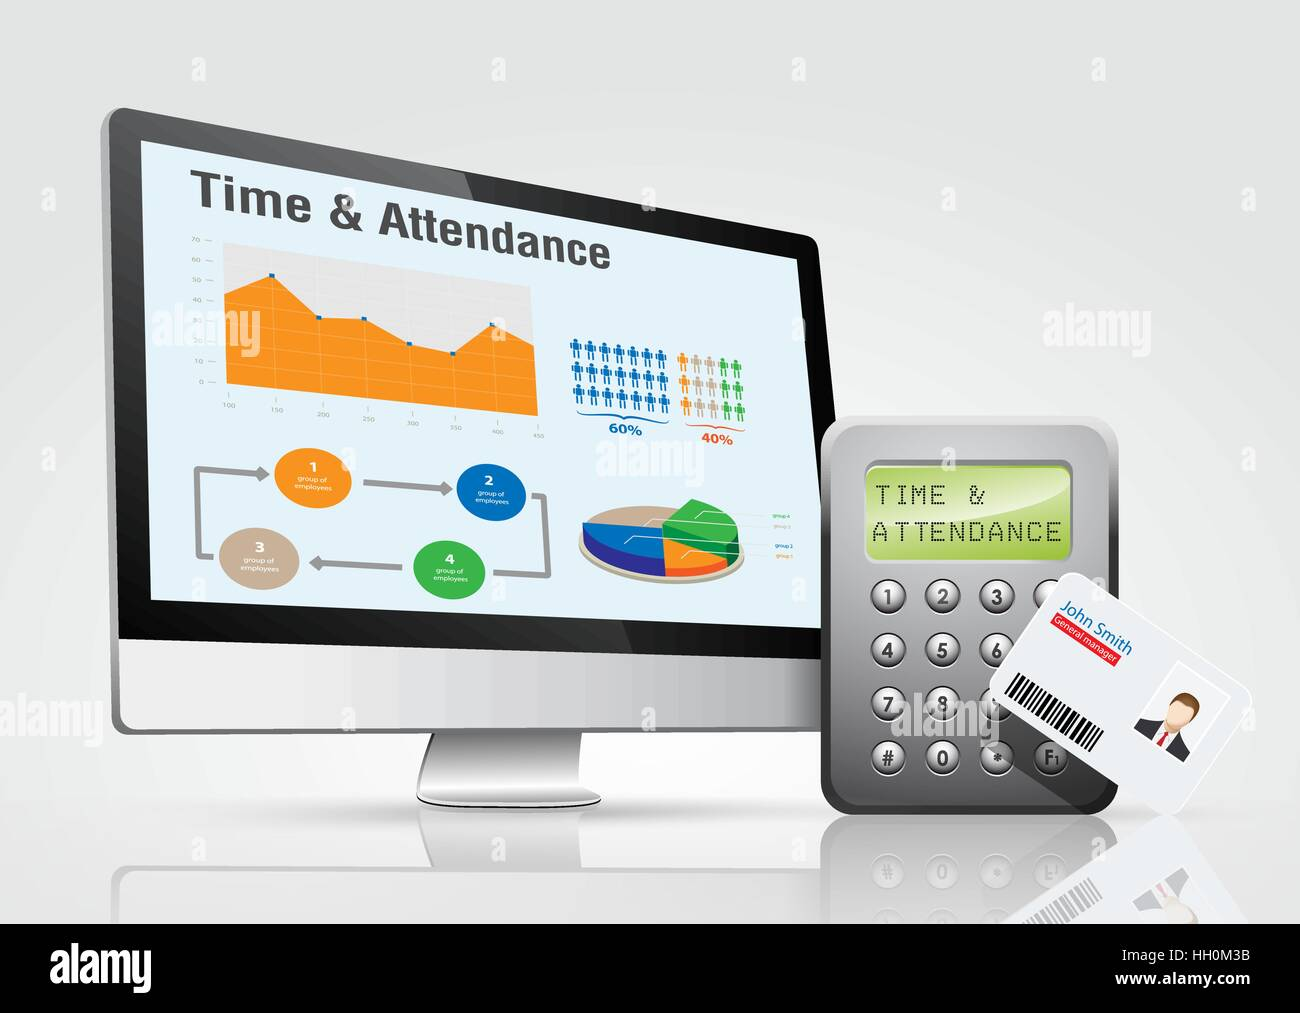 access control system time and attendance management stock vector